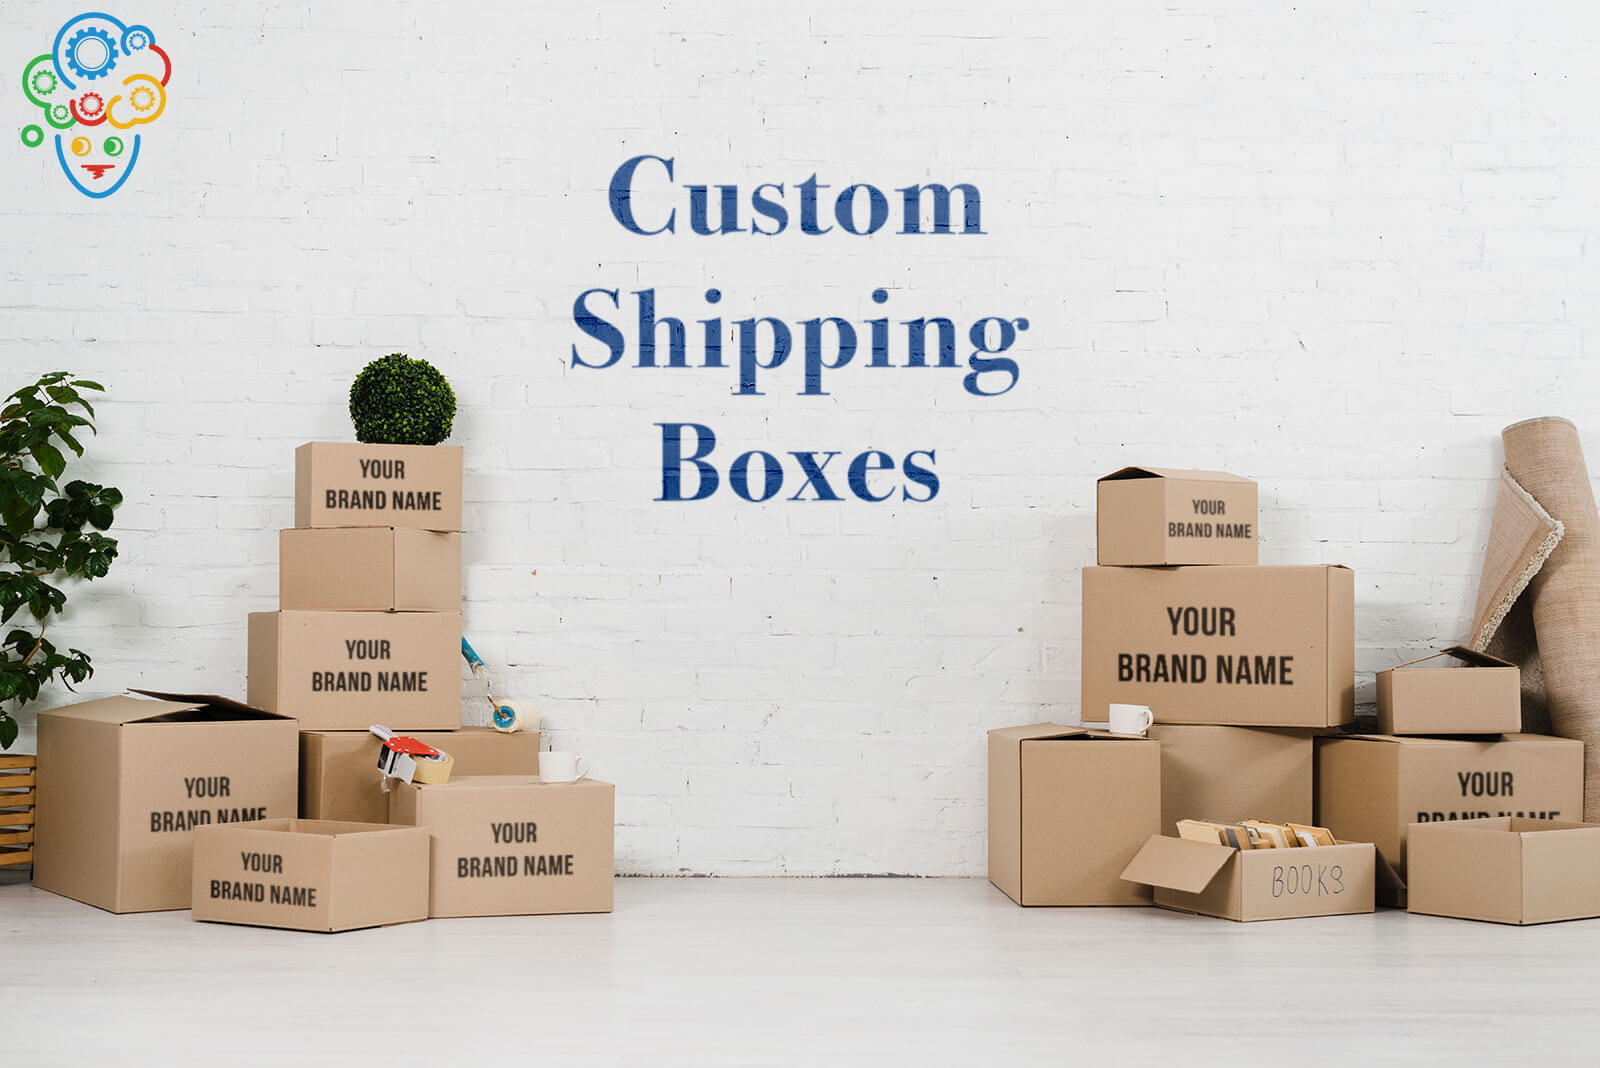 What a Small Business Should Consider About Custom Shipping Boxes